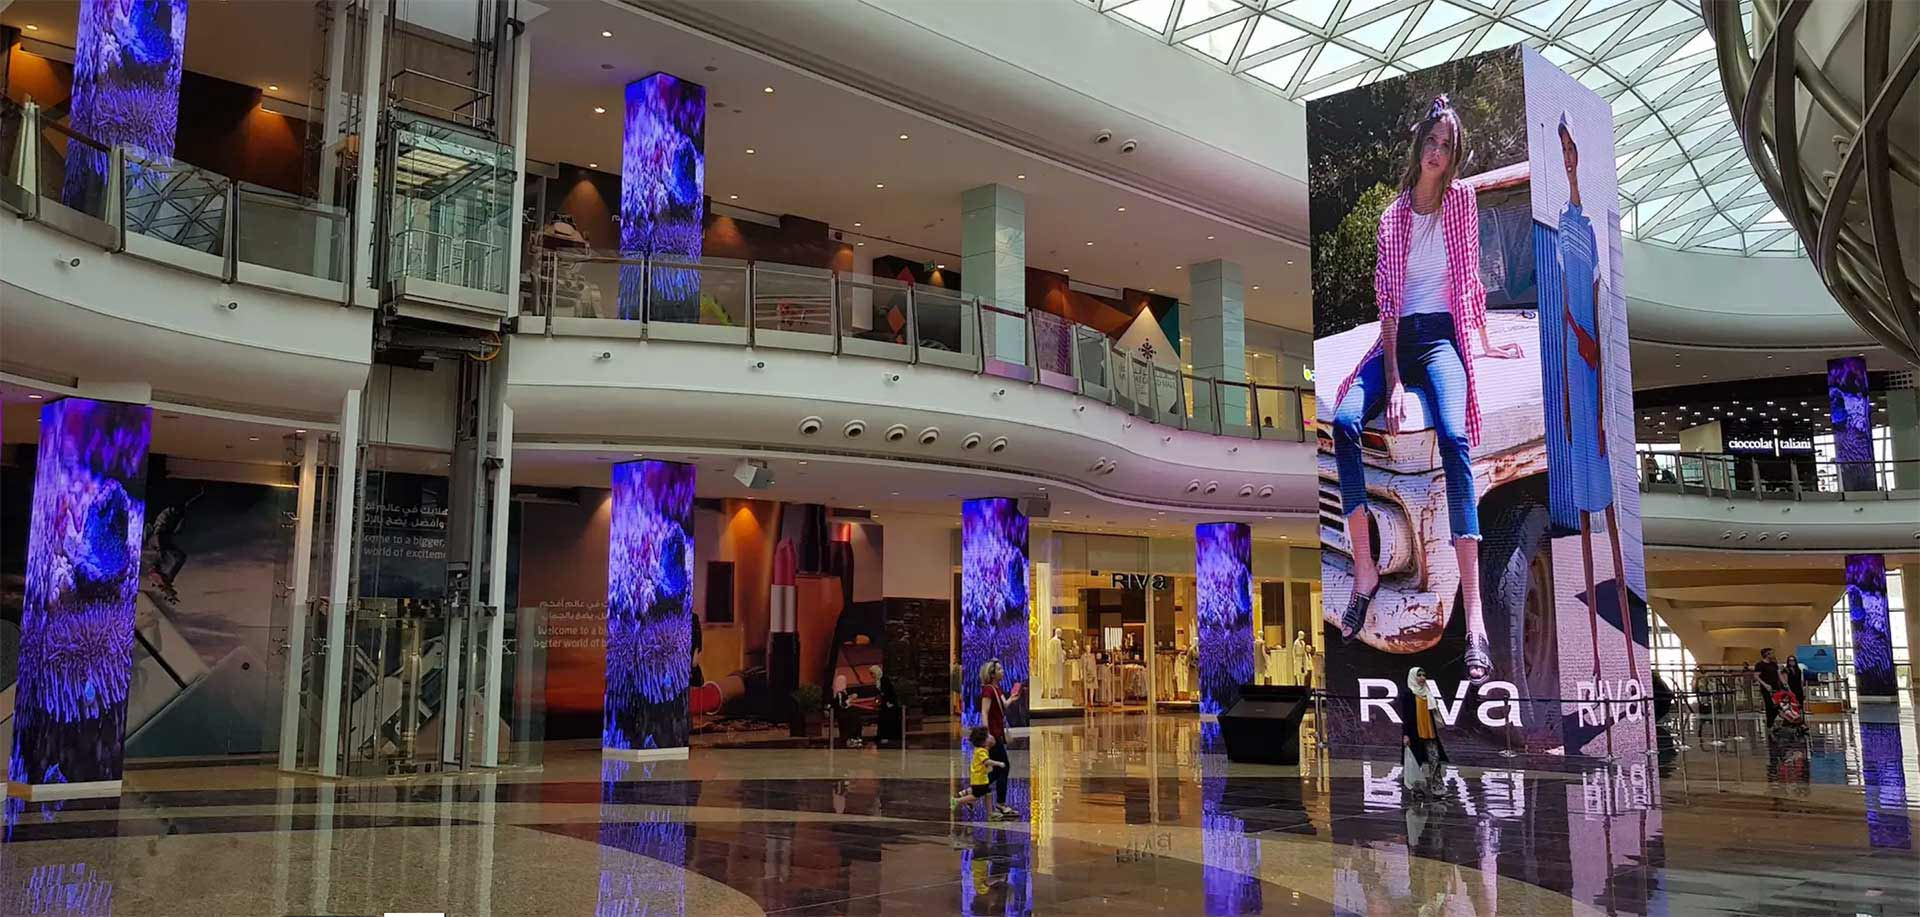 The P2 full-color LED display is used as a cylindrical billboard in shopping malls.